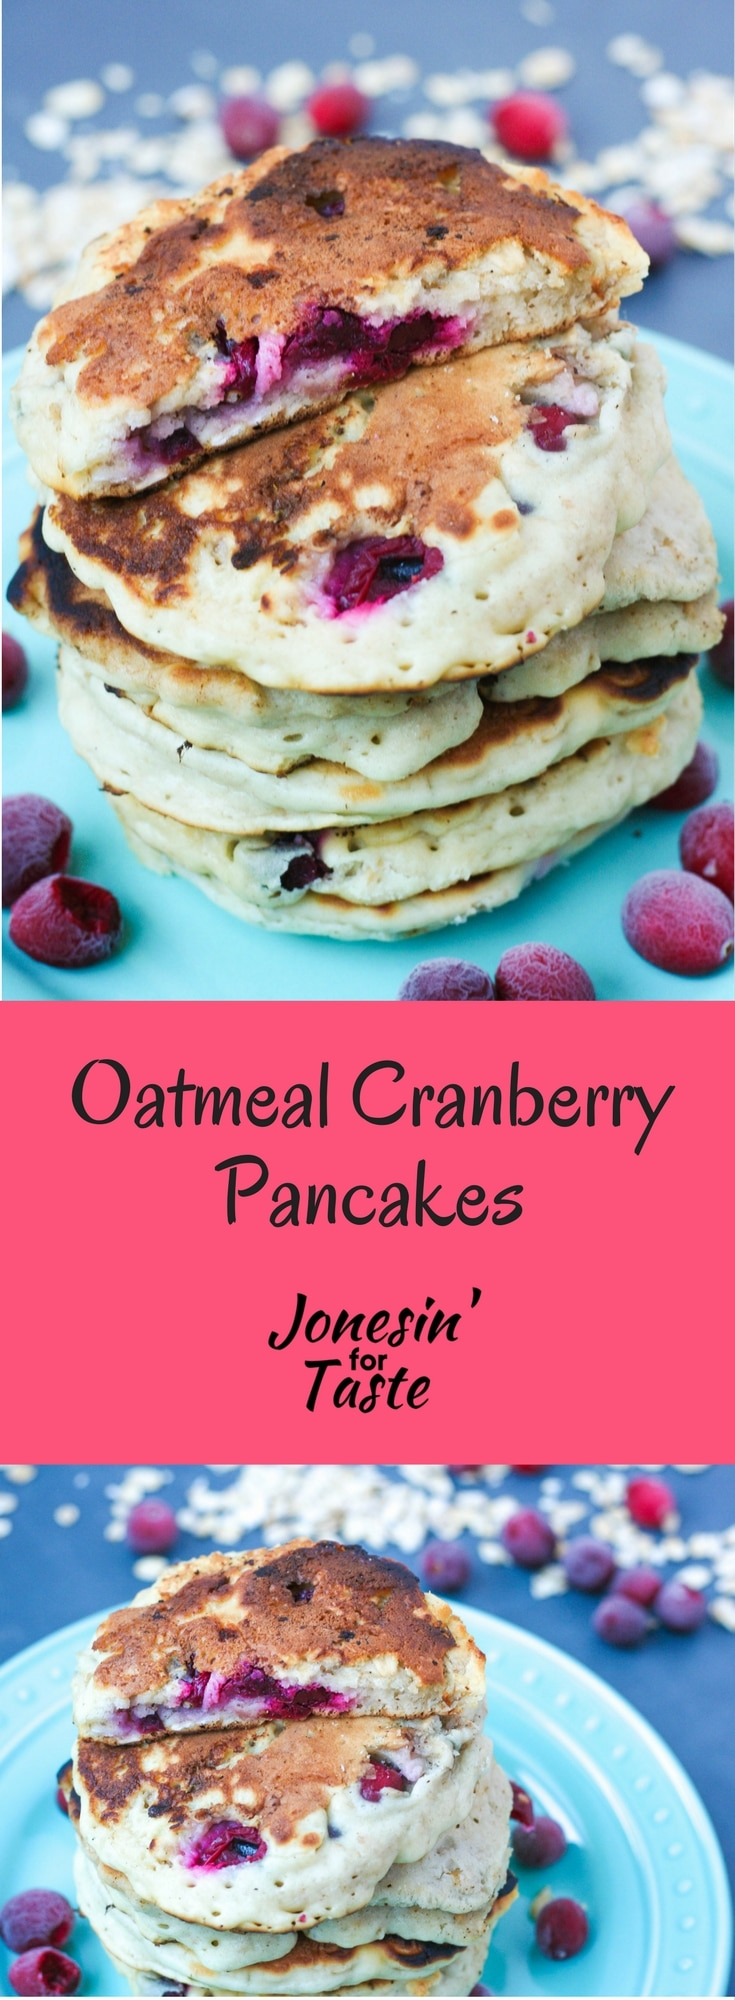 Oatmeal Cranberry Pancakes are a hearty, tart and sweet way to wake up on a fall morning with fresh cranberries and oatmeal in a breakfast classic. #cranberryweek #oatmealpancakes